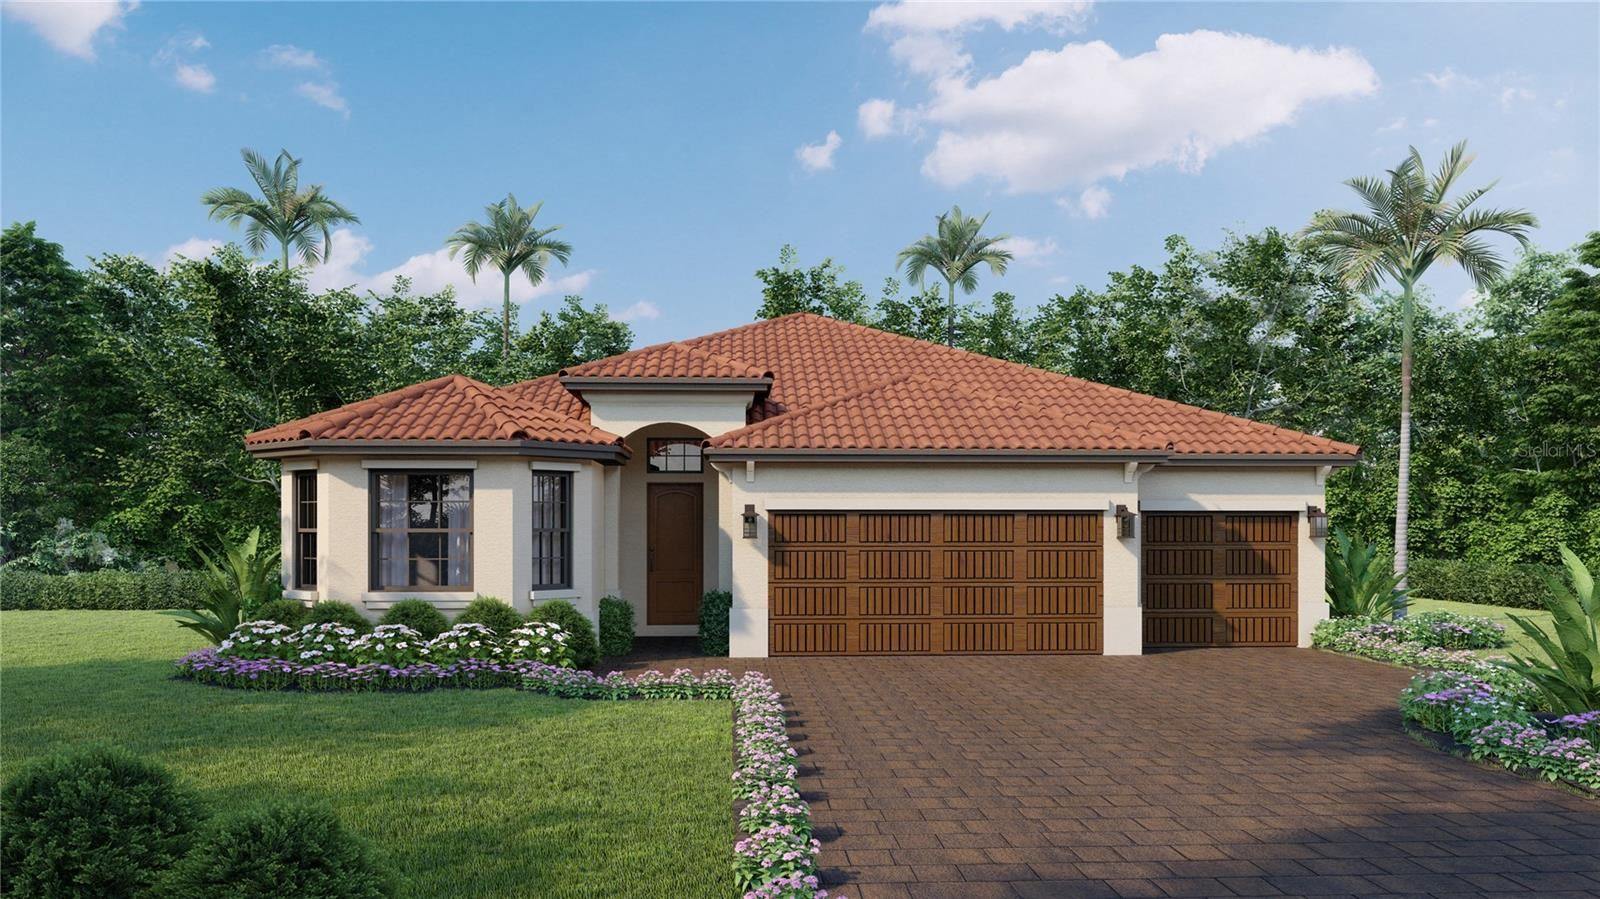 Photo of 8013 CLEARWATER COURT, SARASOTA, FL 34241 (MLS # A4506866)